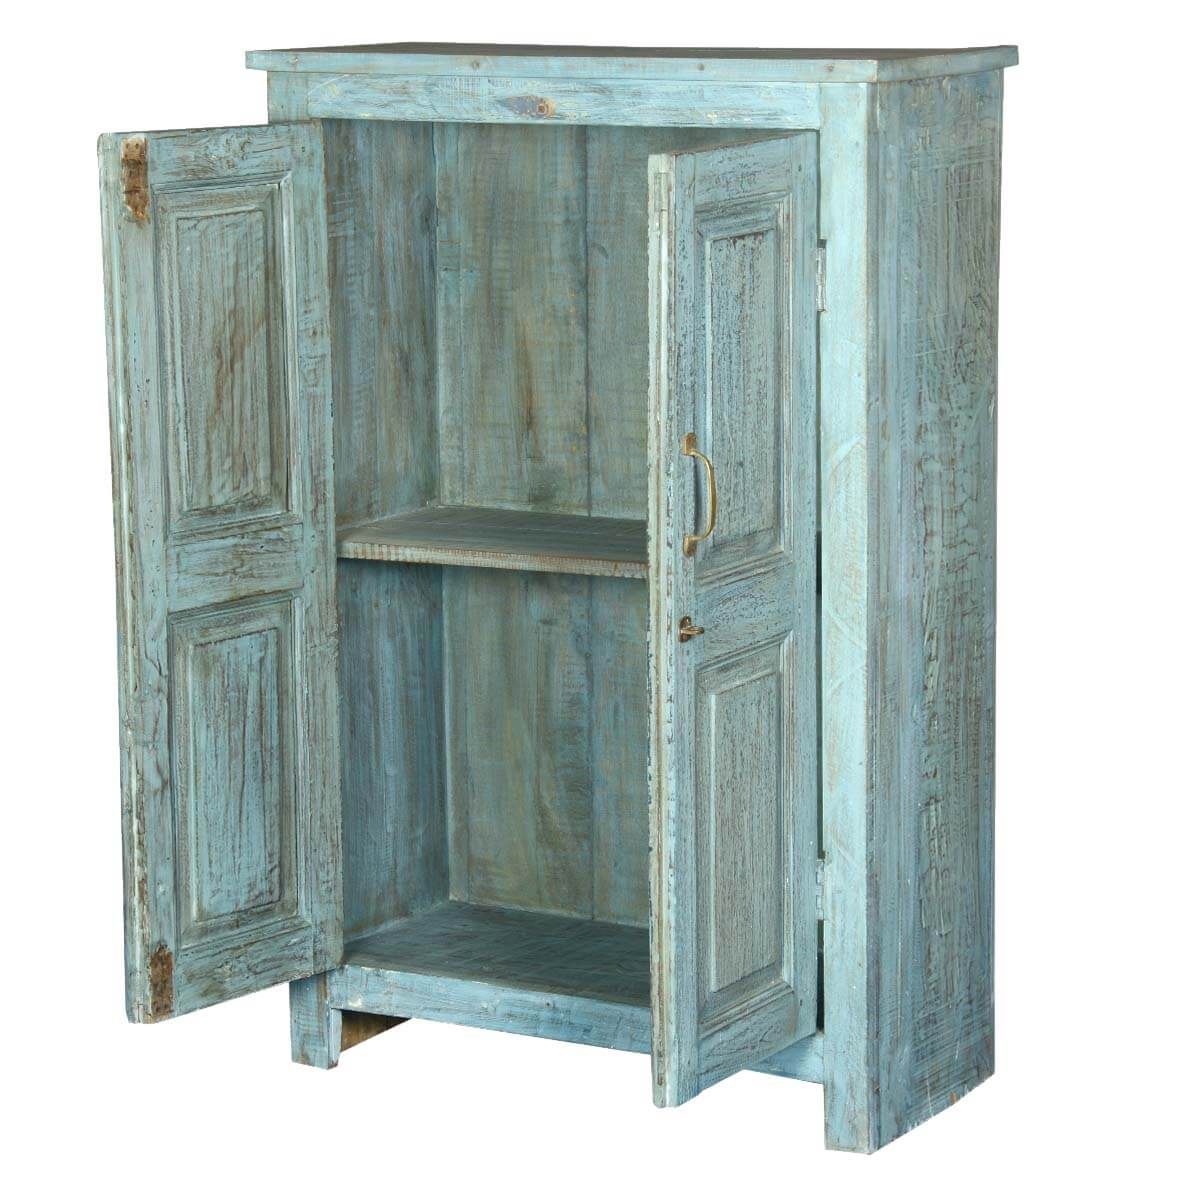 Wooden Storage Cabinets ~ Distressed blue door reclaimed wood storage cabinet